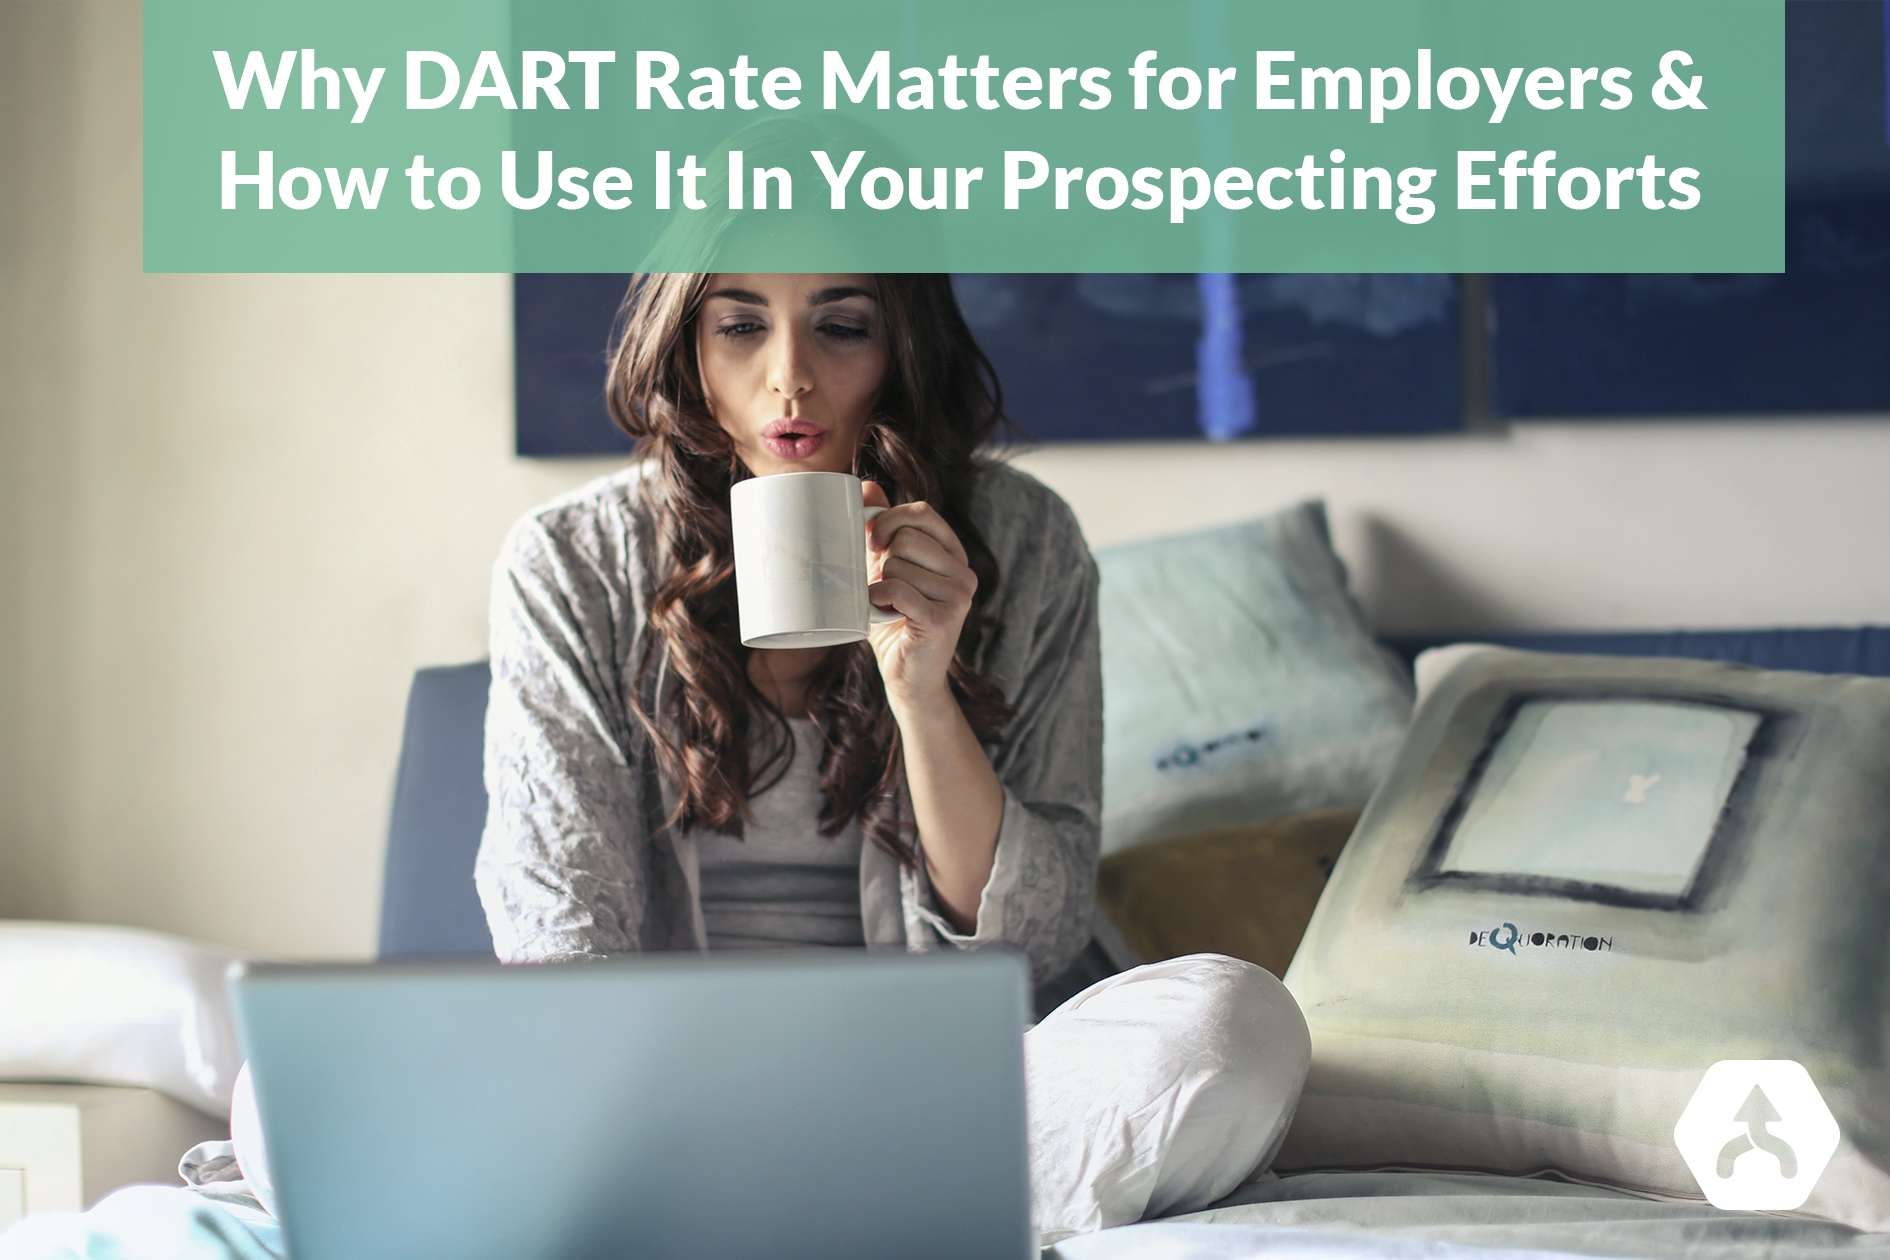 Why DART Rate Matters for Employers & How to Use it in Your Prospecting Efforts